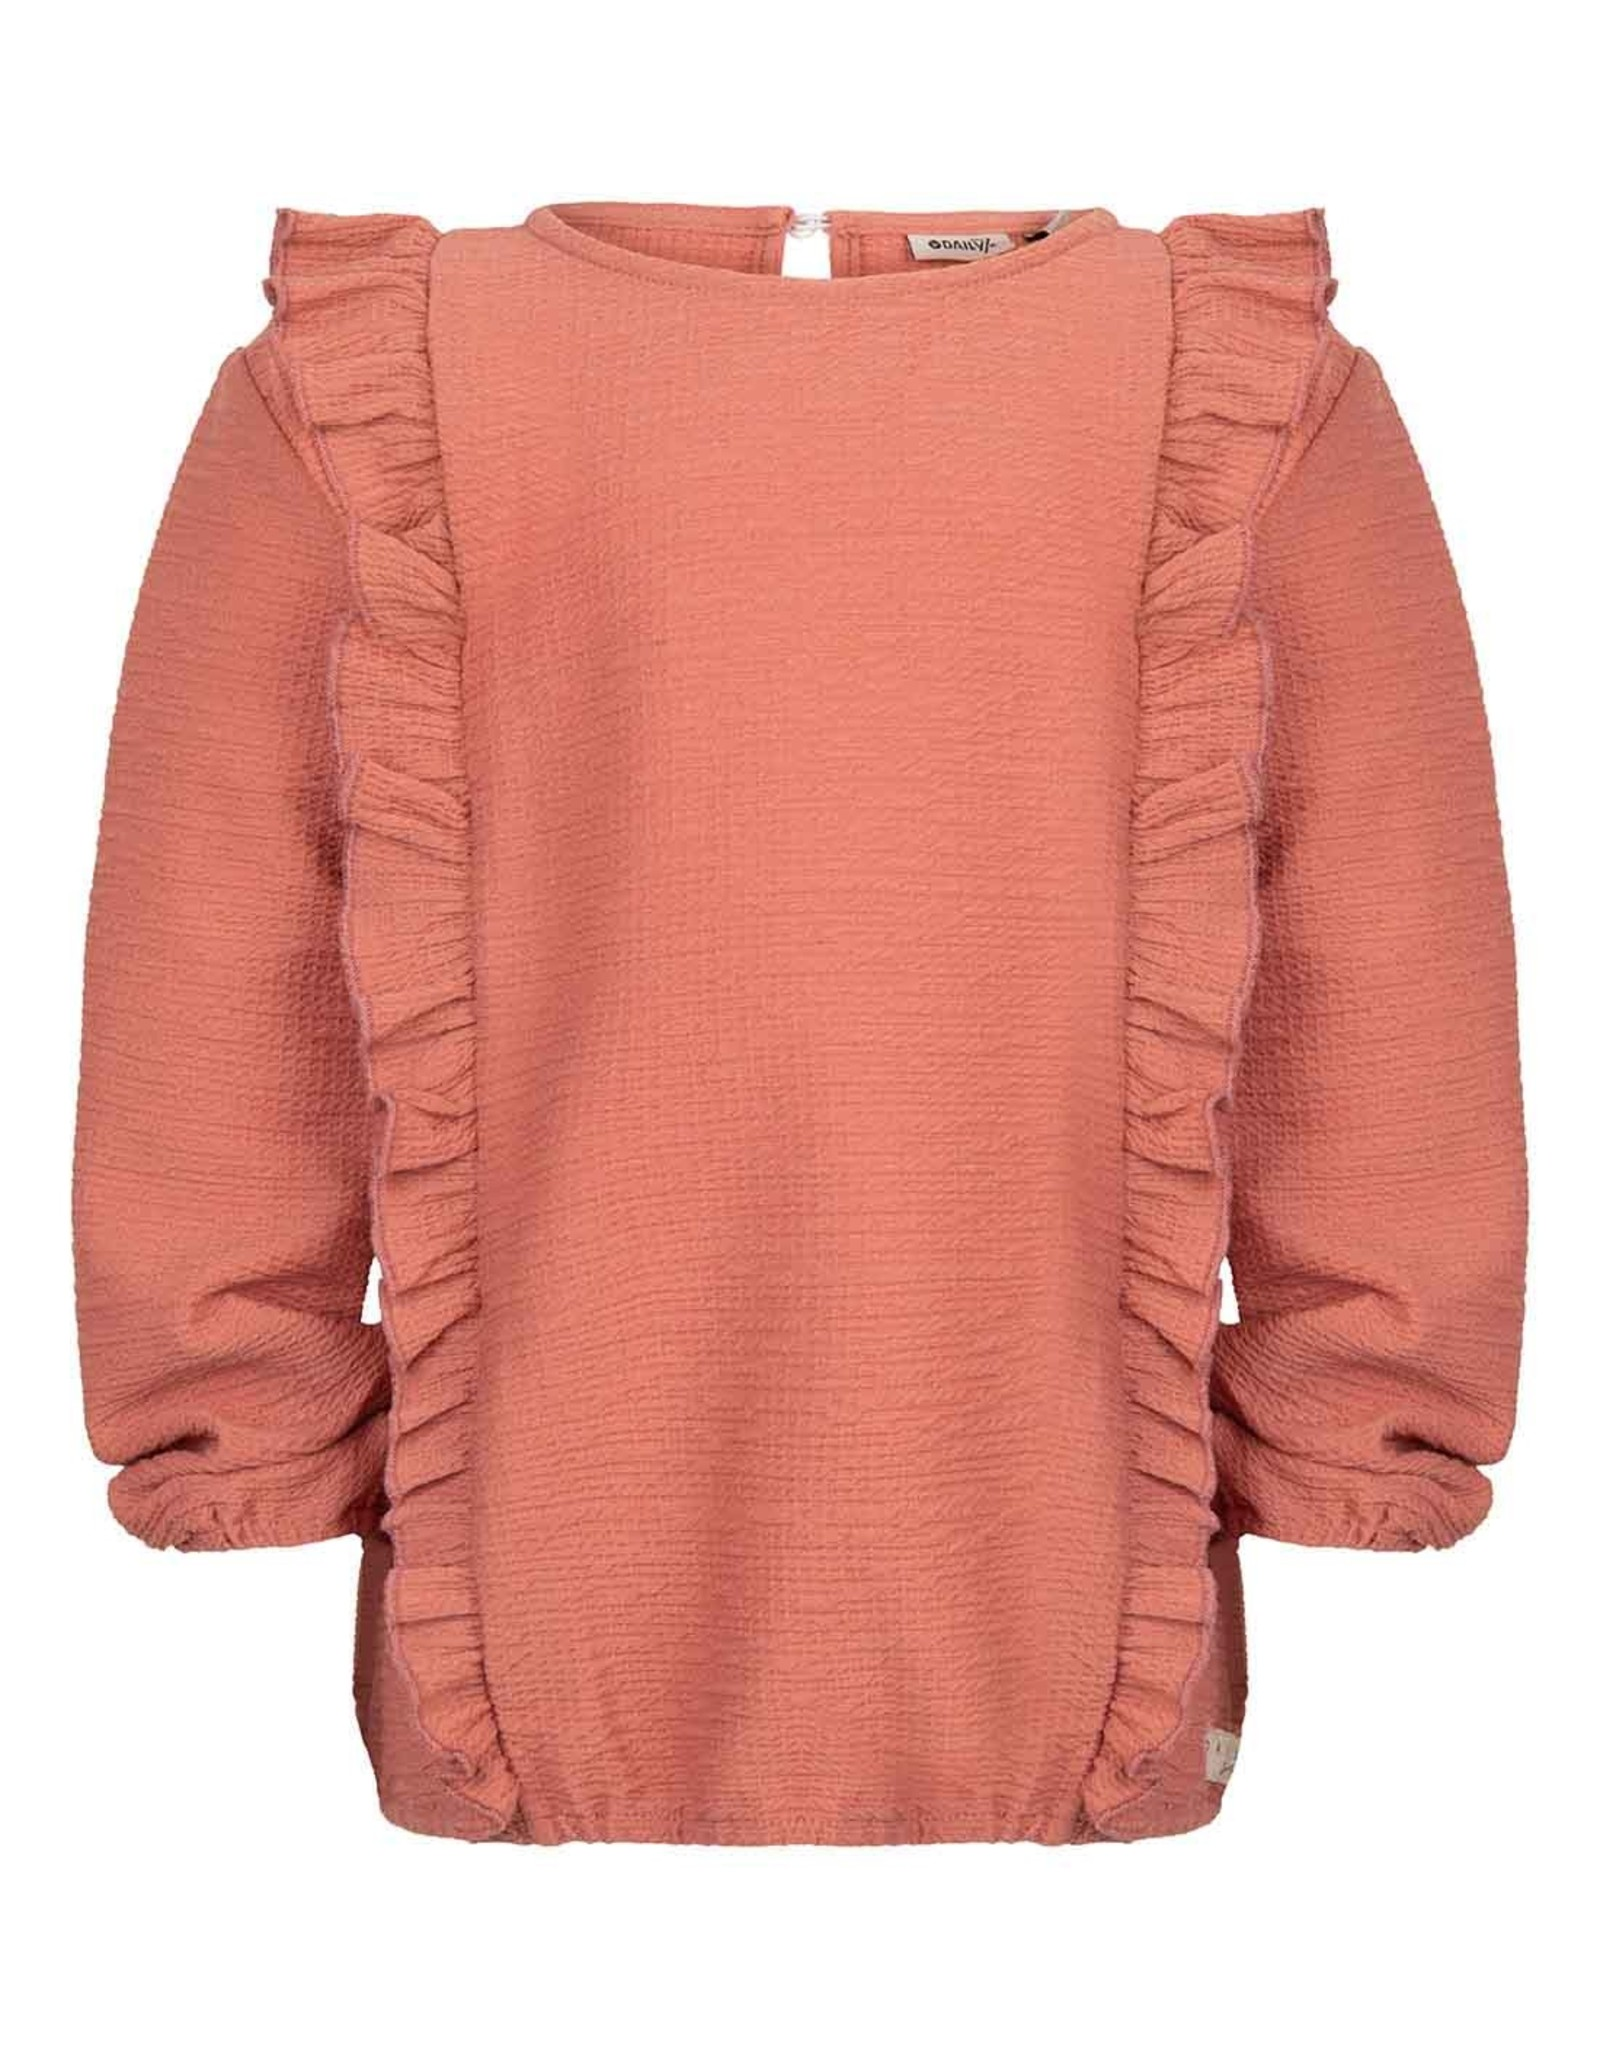 Daily7 Daily7 meisjes sweater met Roesels Brick Dust